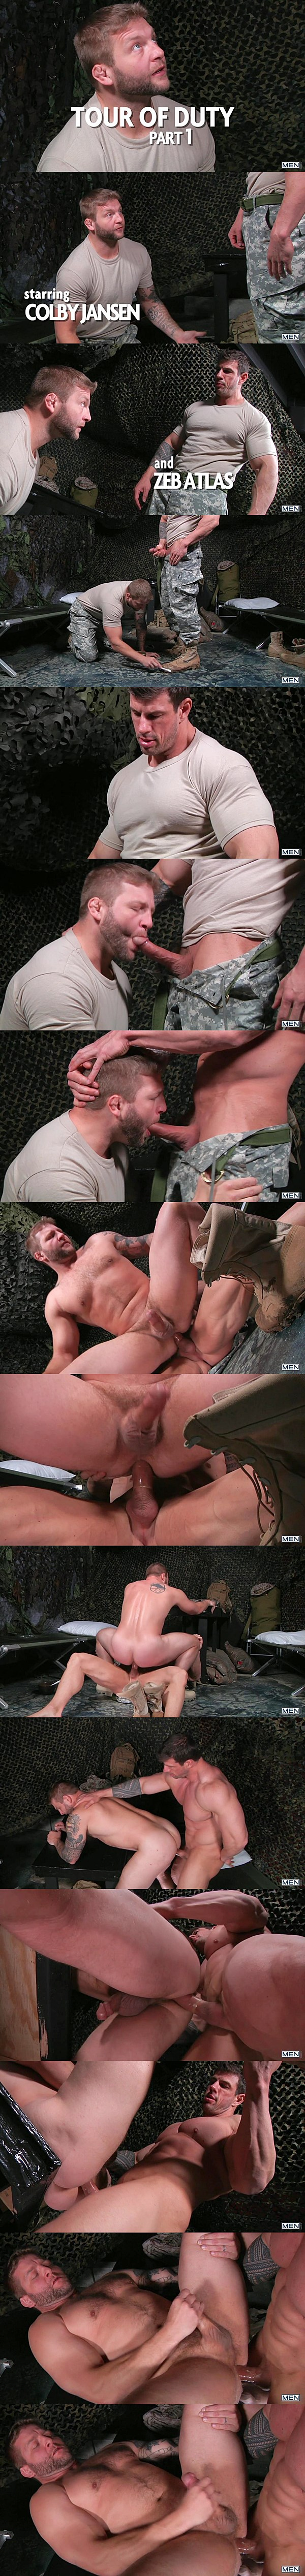 A sneak peek of Zeb Atlas fucking Colby Jansen in Tour Of Duty Part 1 at Drillmyhole 01